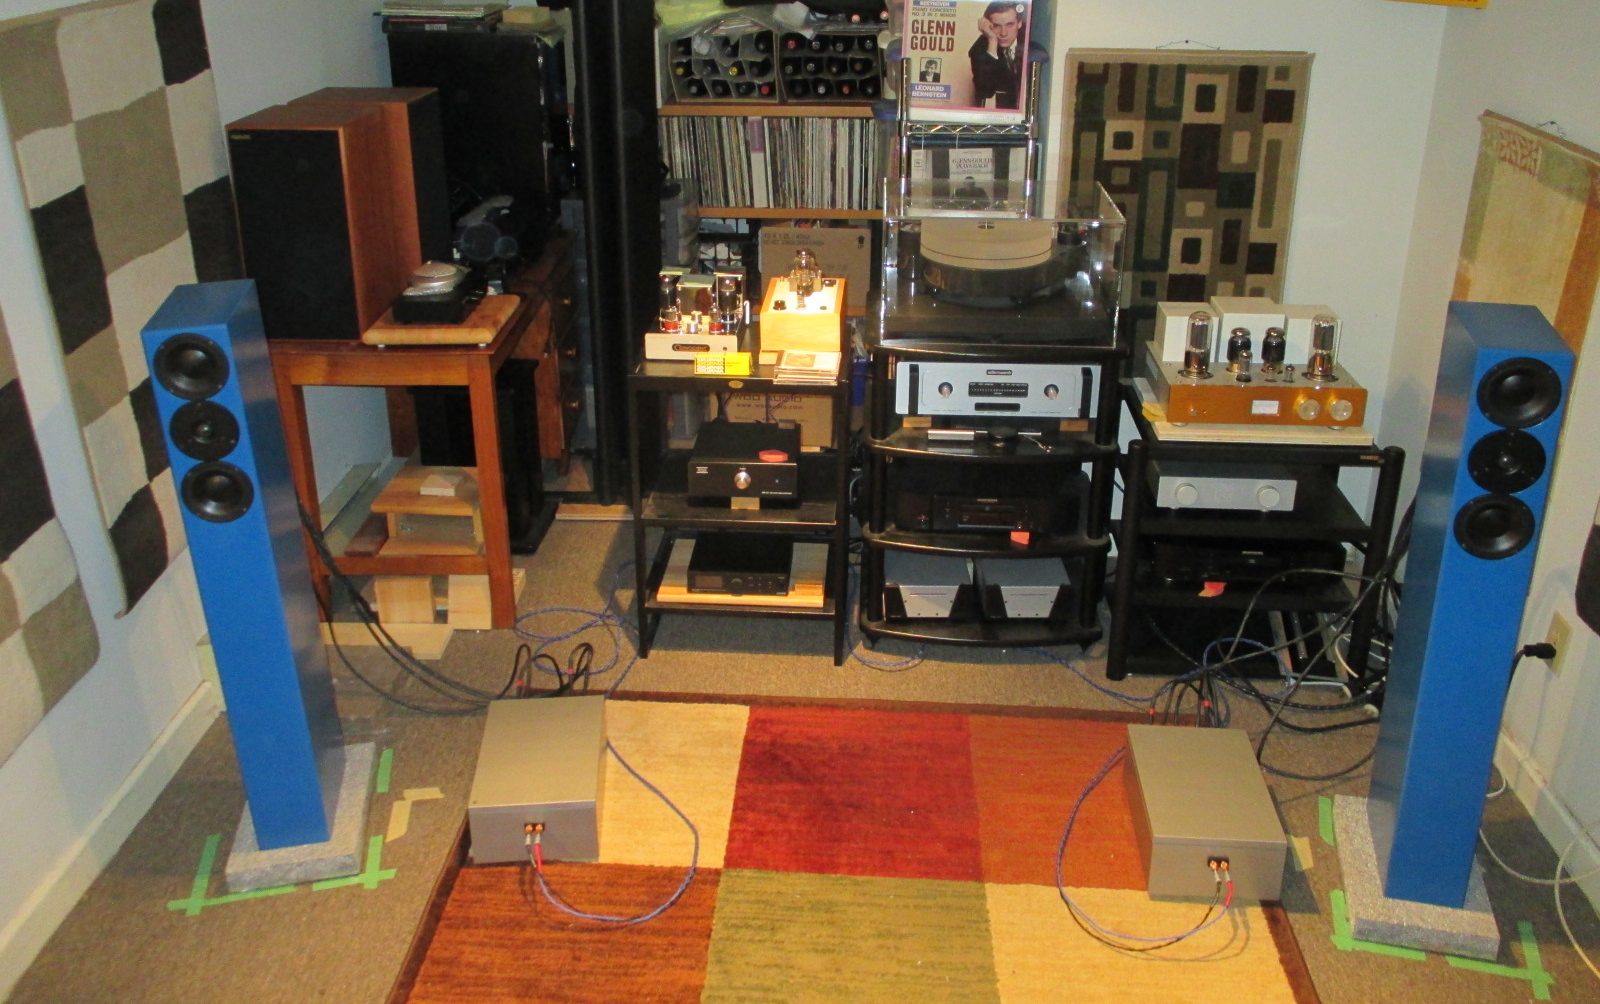 A Kingston Trio Teo Audio Runa Loudspeakers Liquid Pre Preamplifier Line Driver With External Crossovers Passive Silver In Middle Of The Rack On Far Right Below